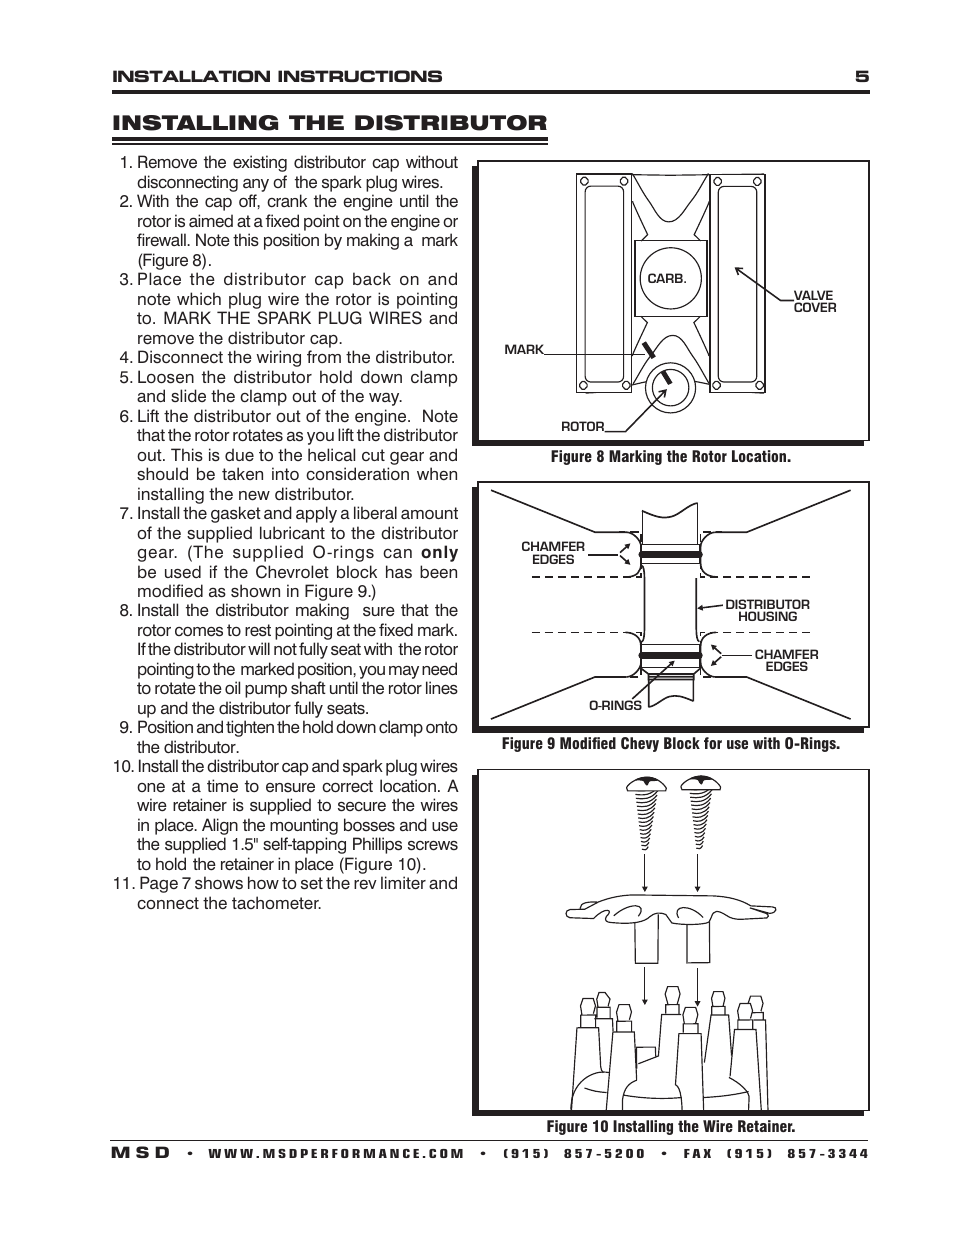 Ford 351 Distributor Wiring Diagram Trusted Schematics Installing The Msd 83506 460 Ready To Run Ignition Switch